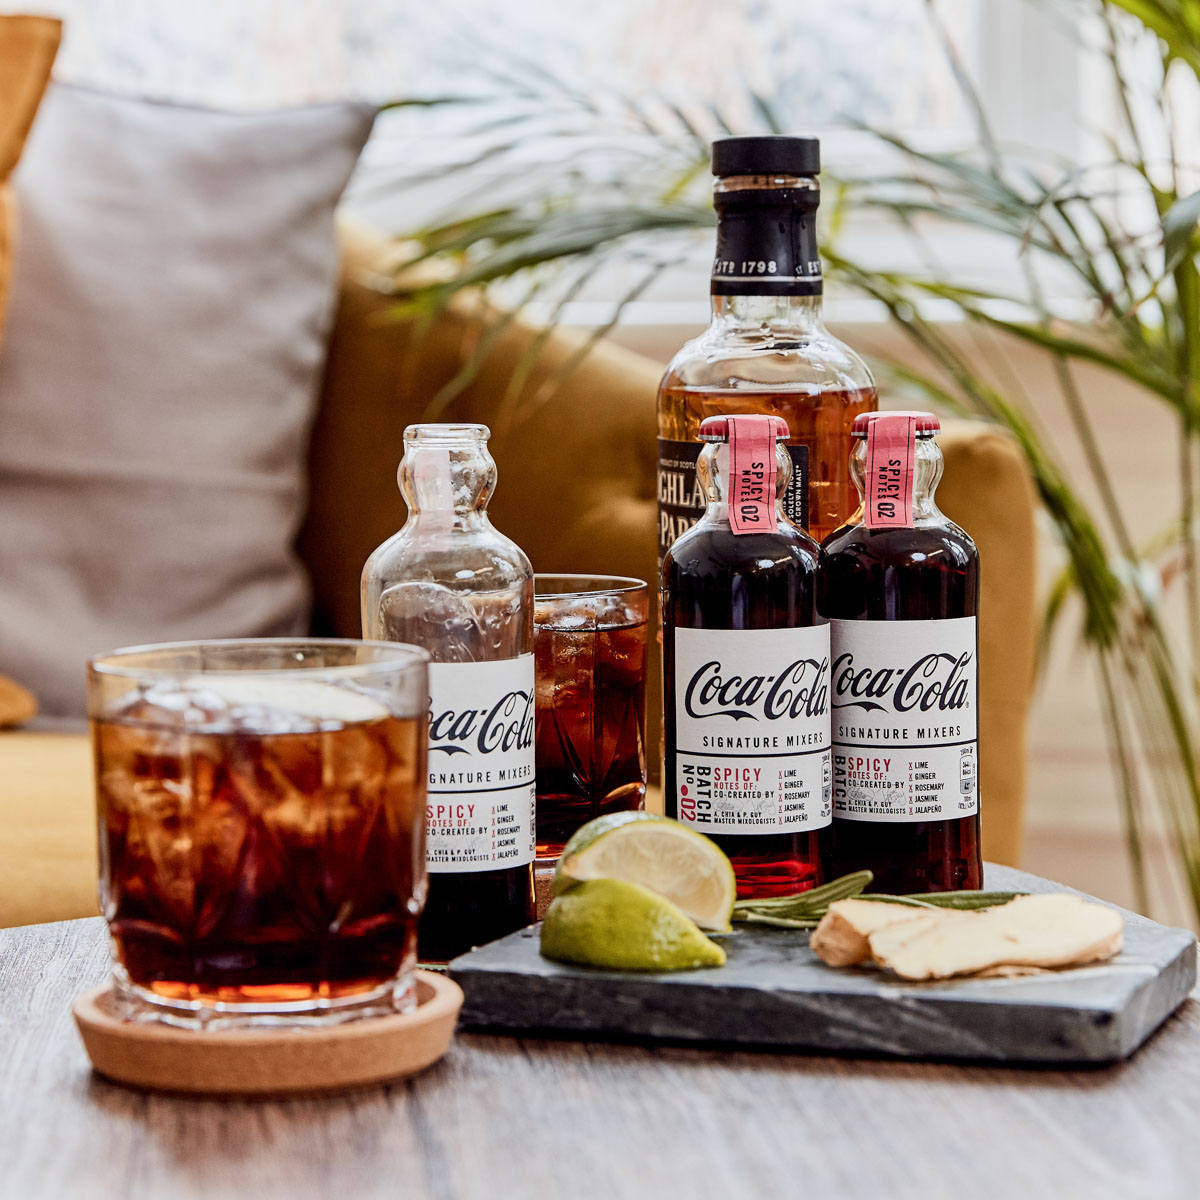 coca-cola-signature-mixers-enter-the-dark-spicy-man-for-himself